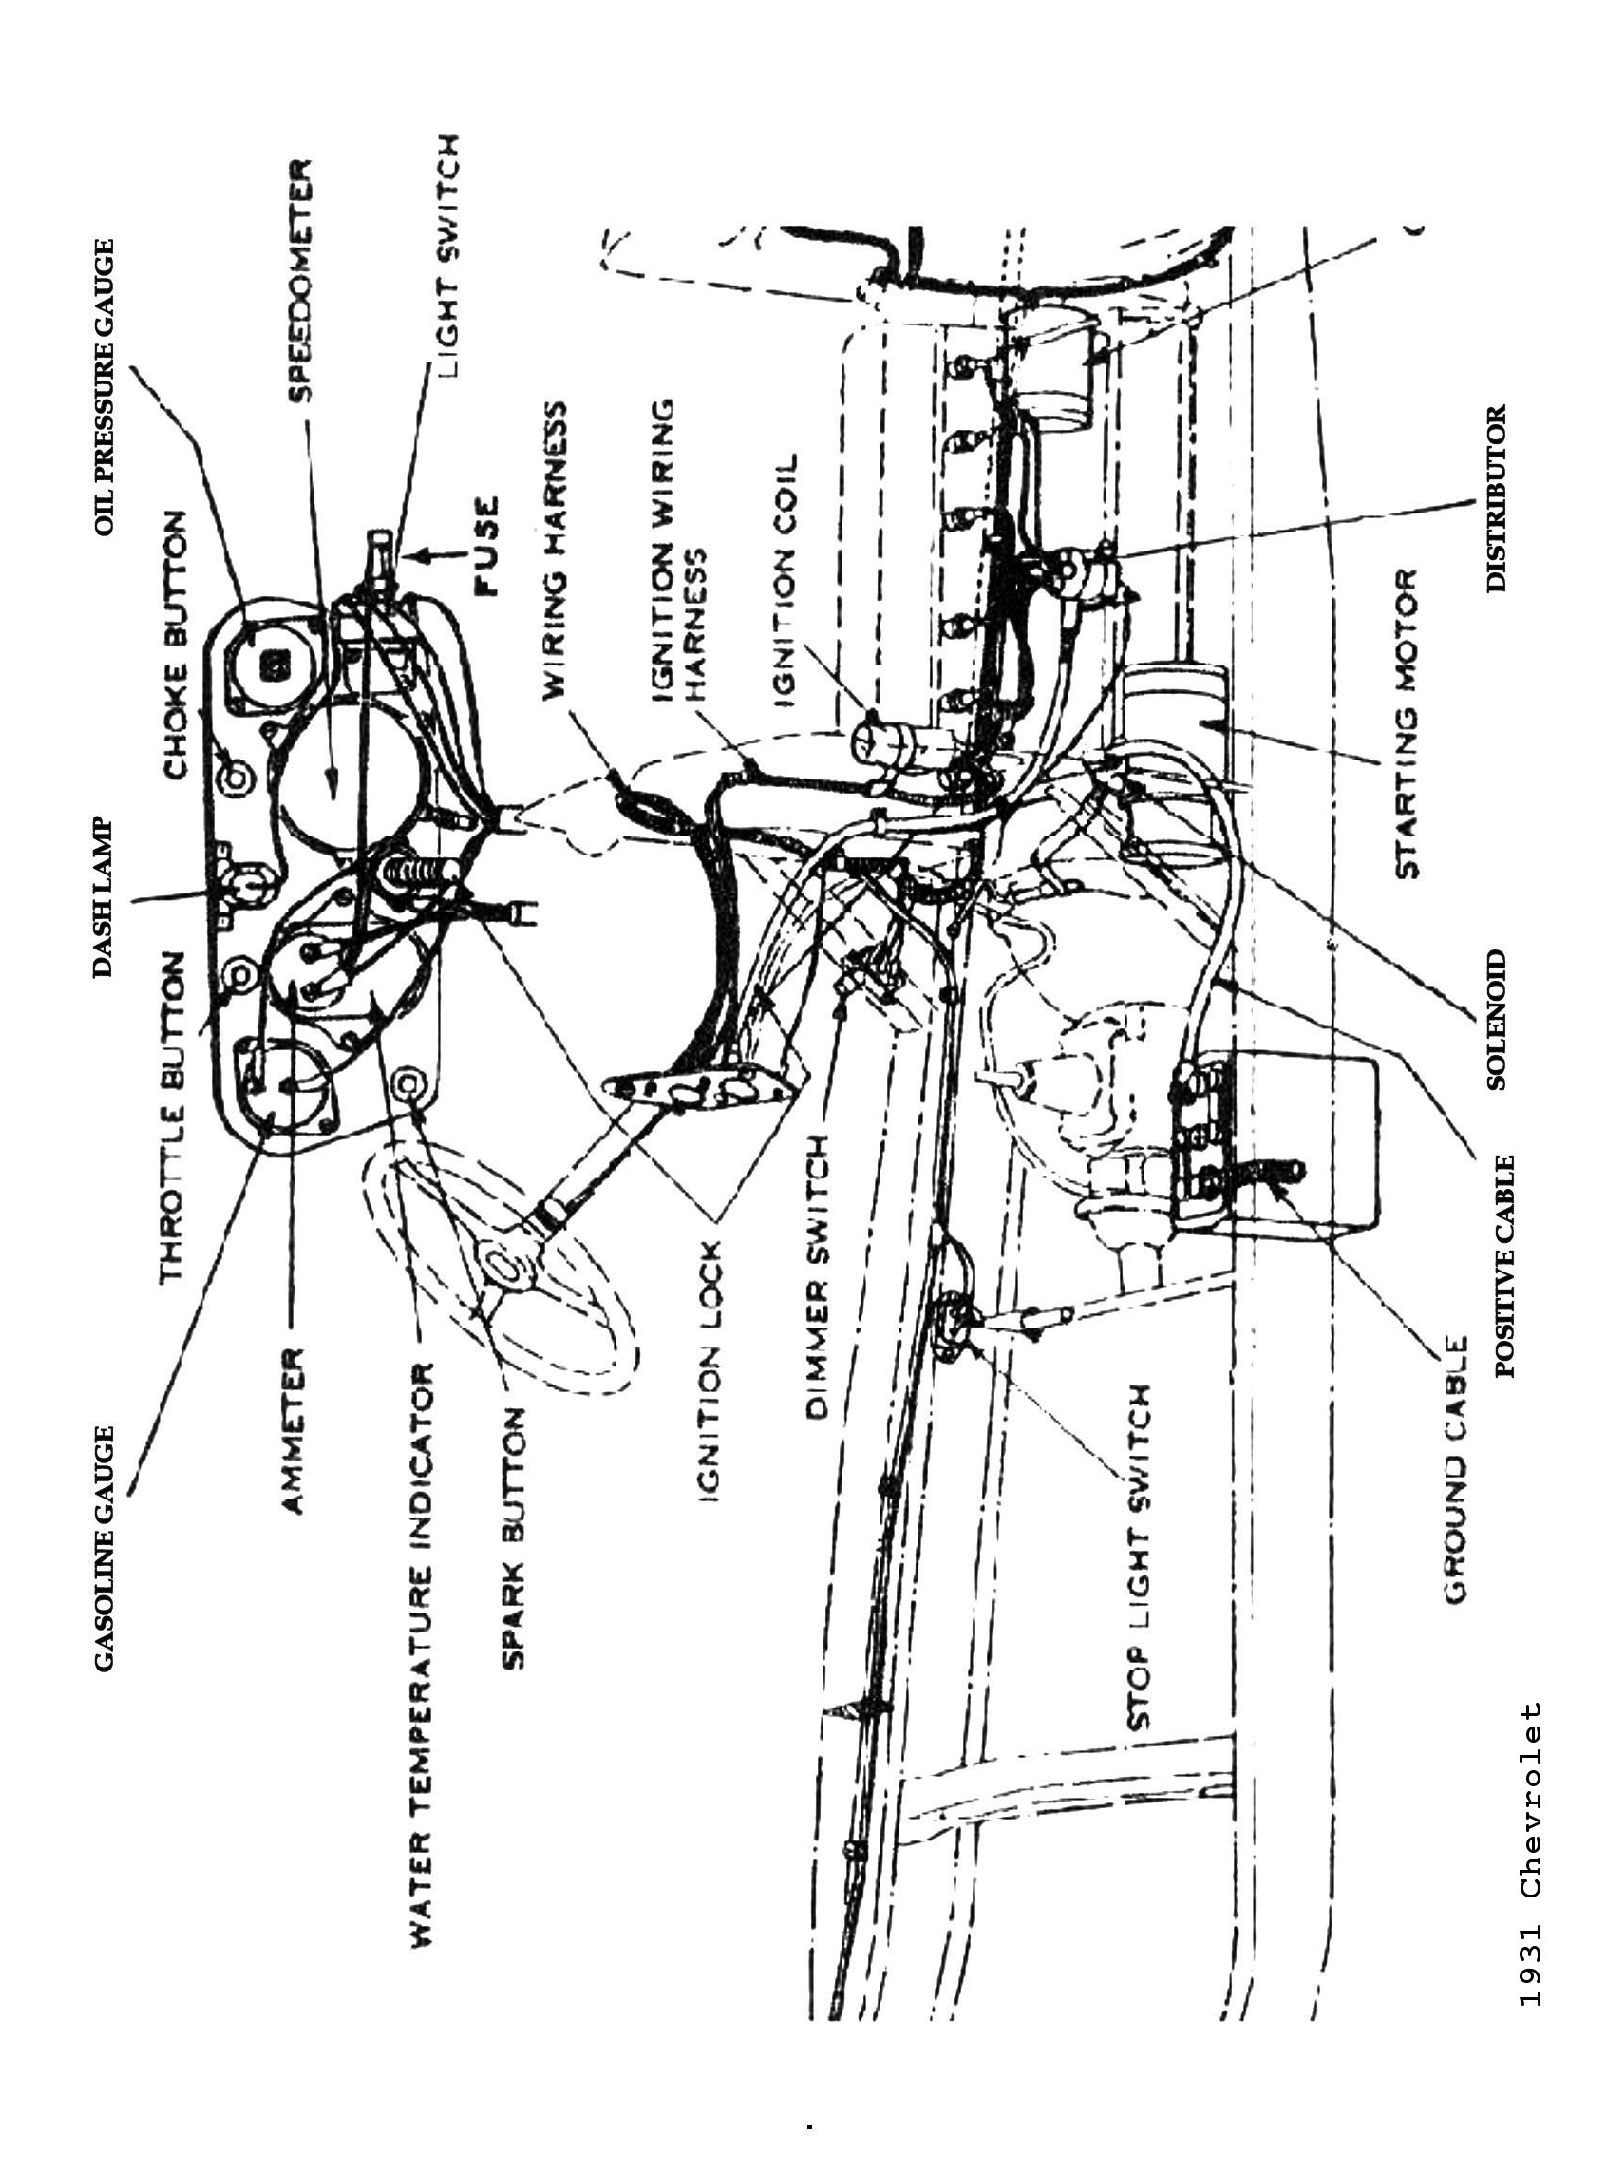 1936 ford pickup wiring diagram   31 wiring diagram images